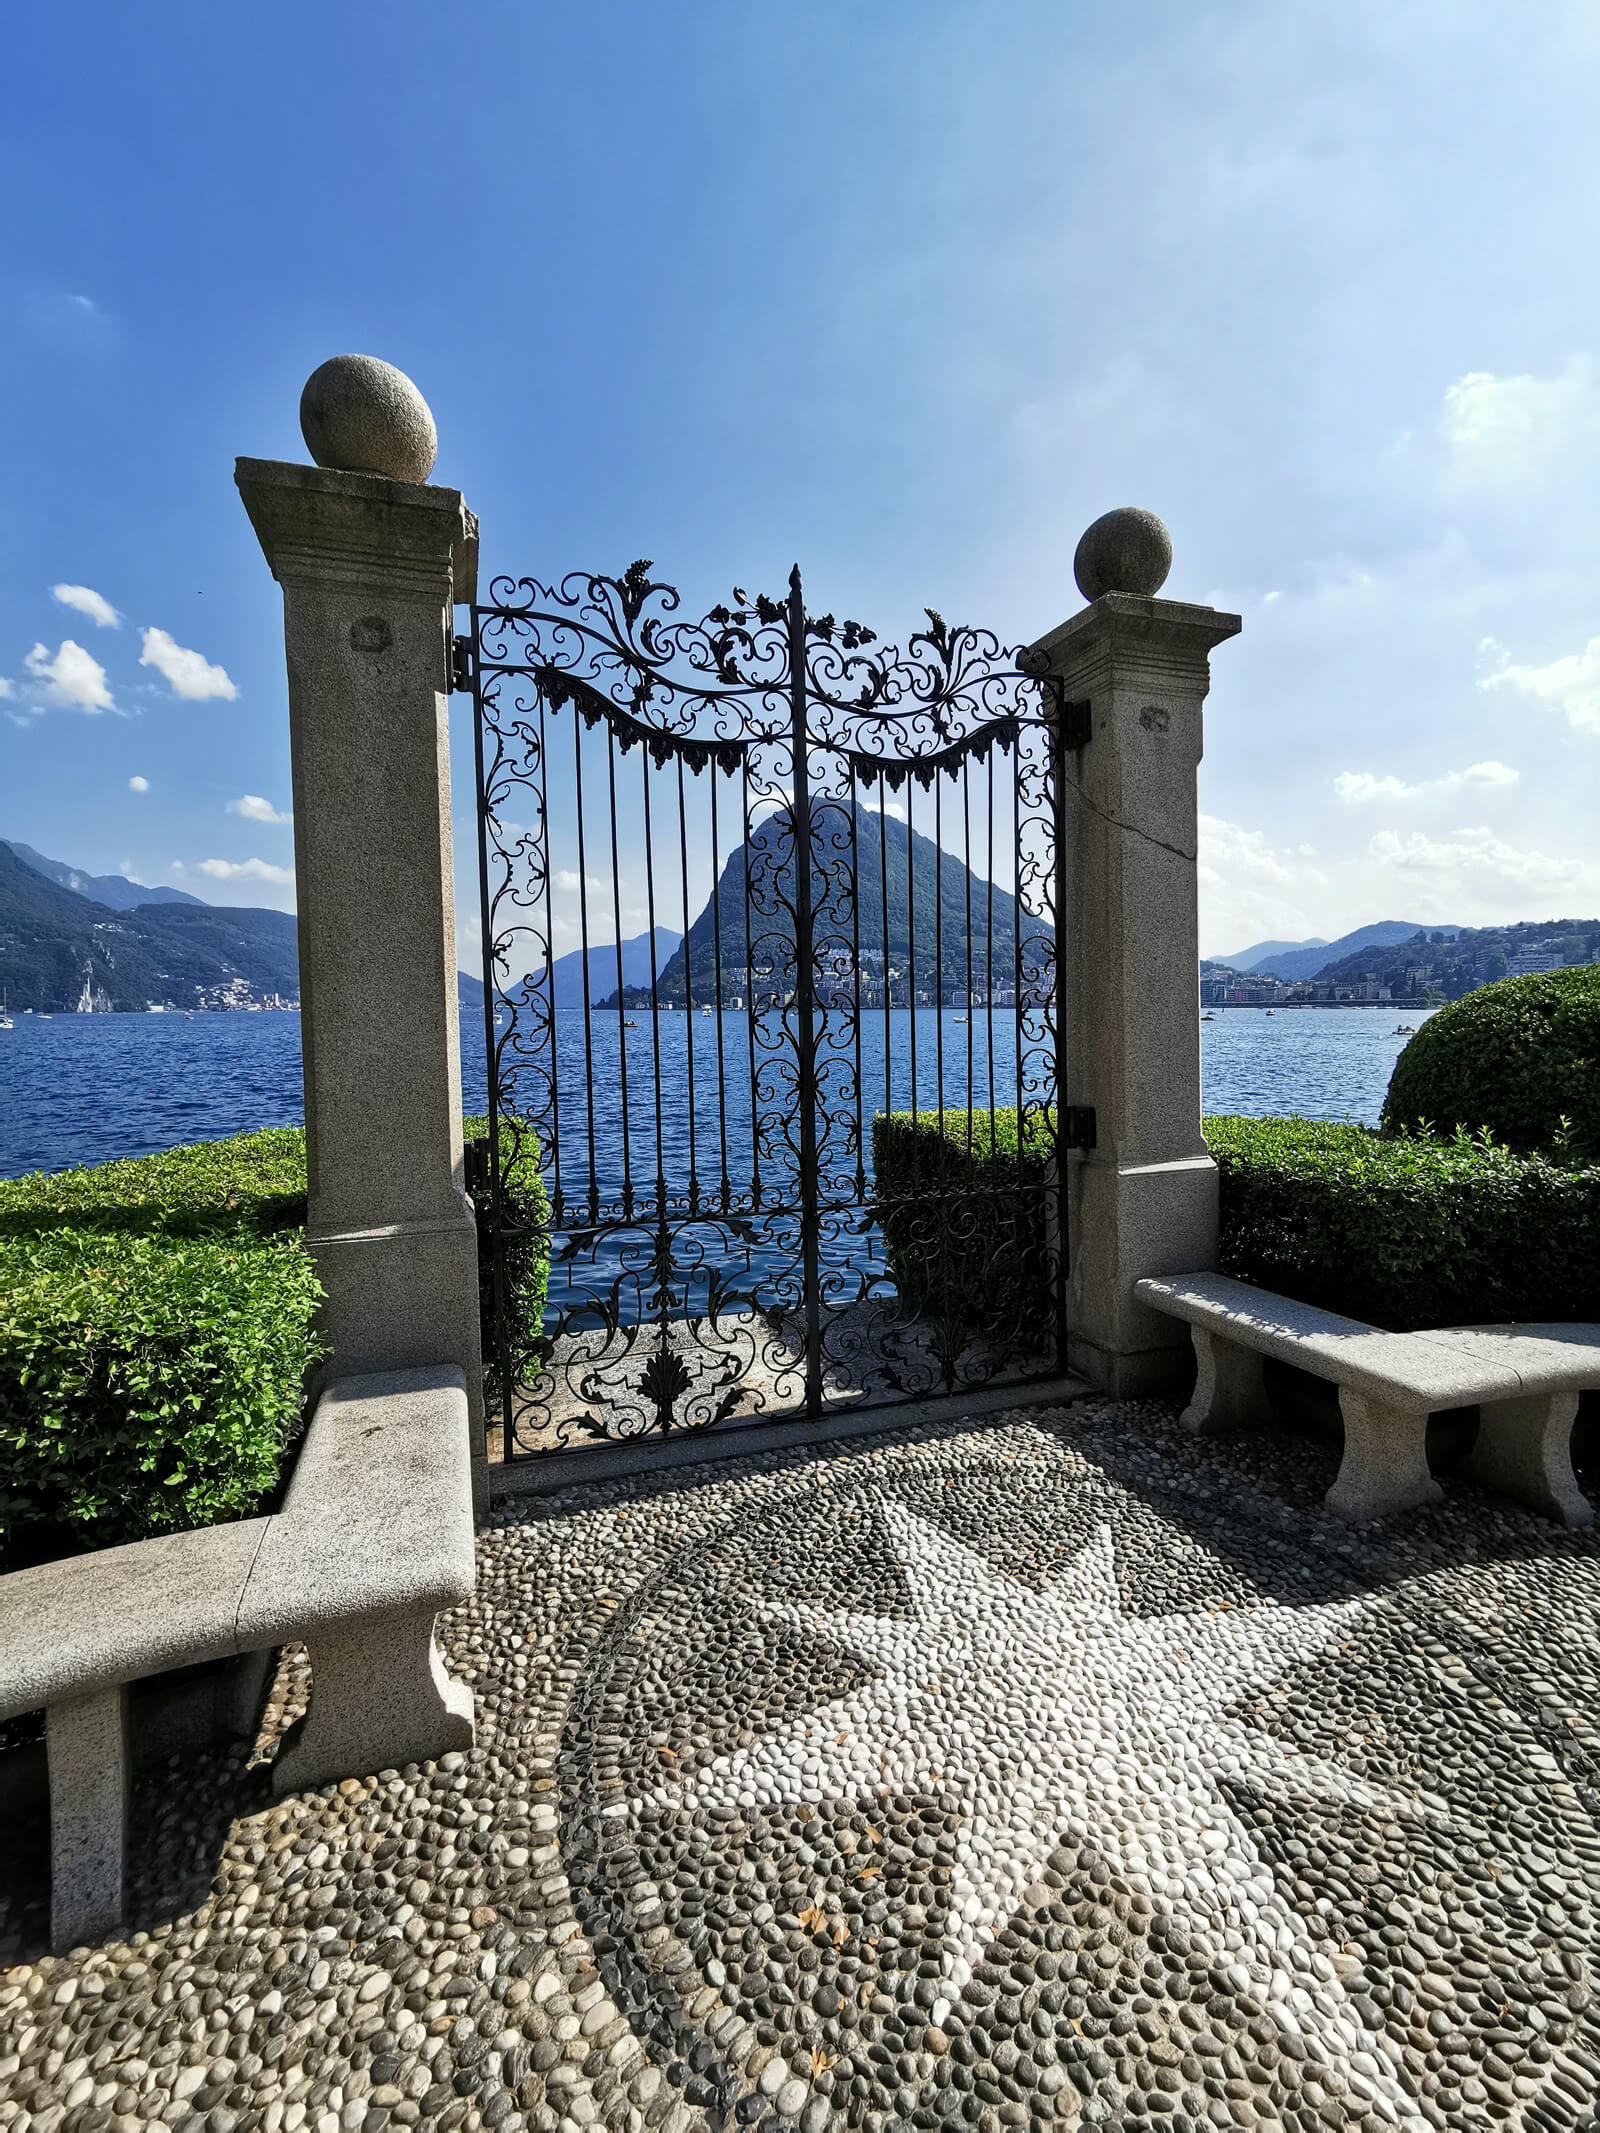 Lugano Lakeside during Summer